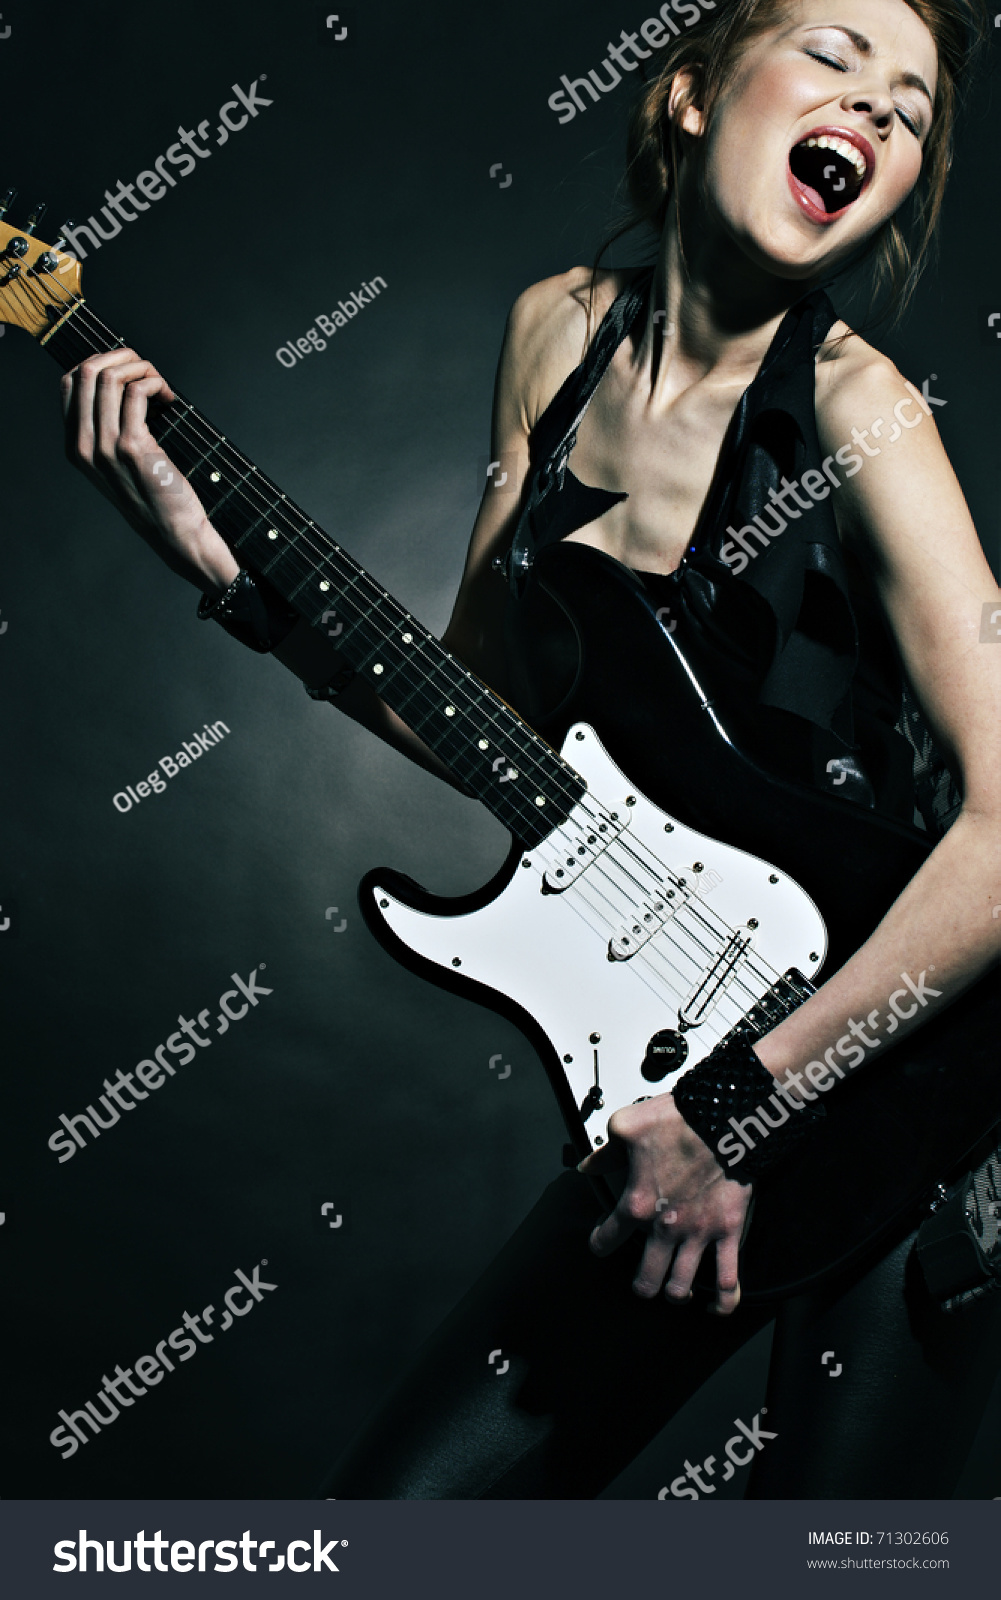 Guitar Power Download Full